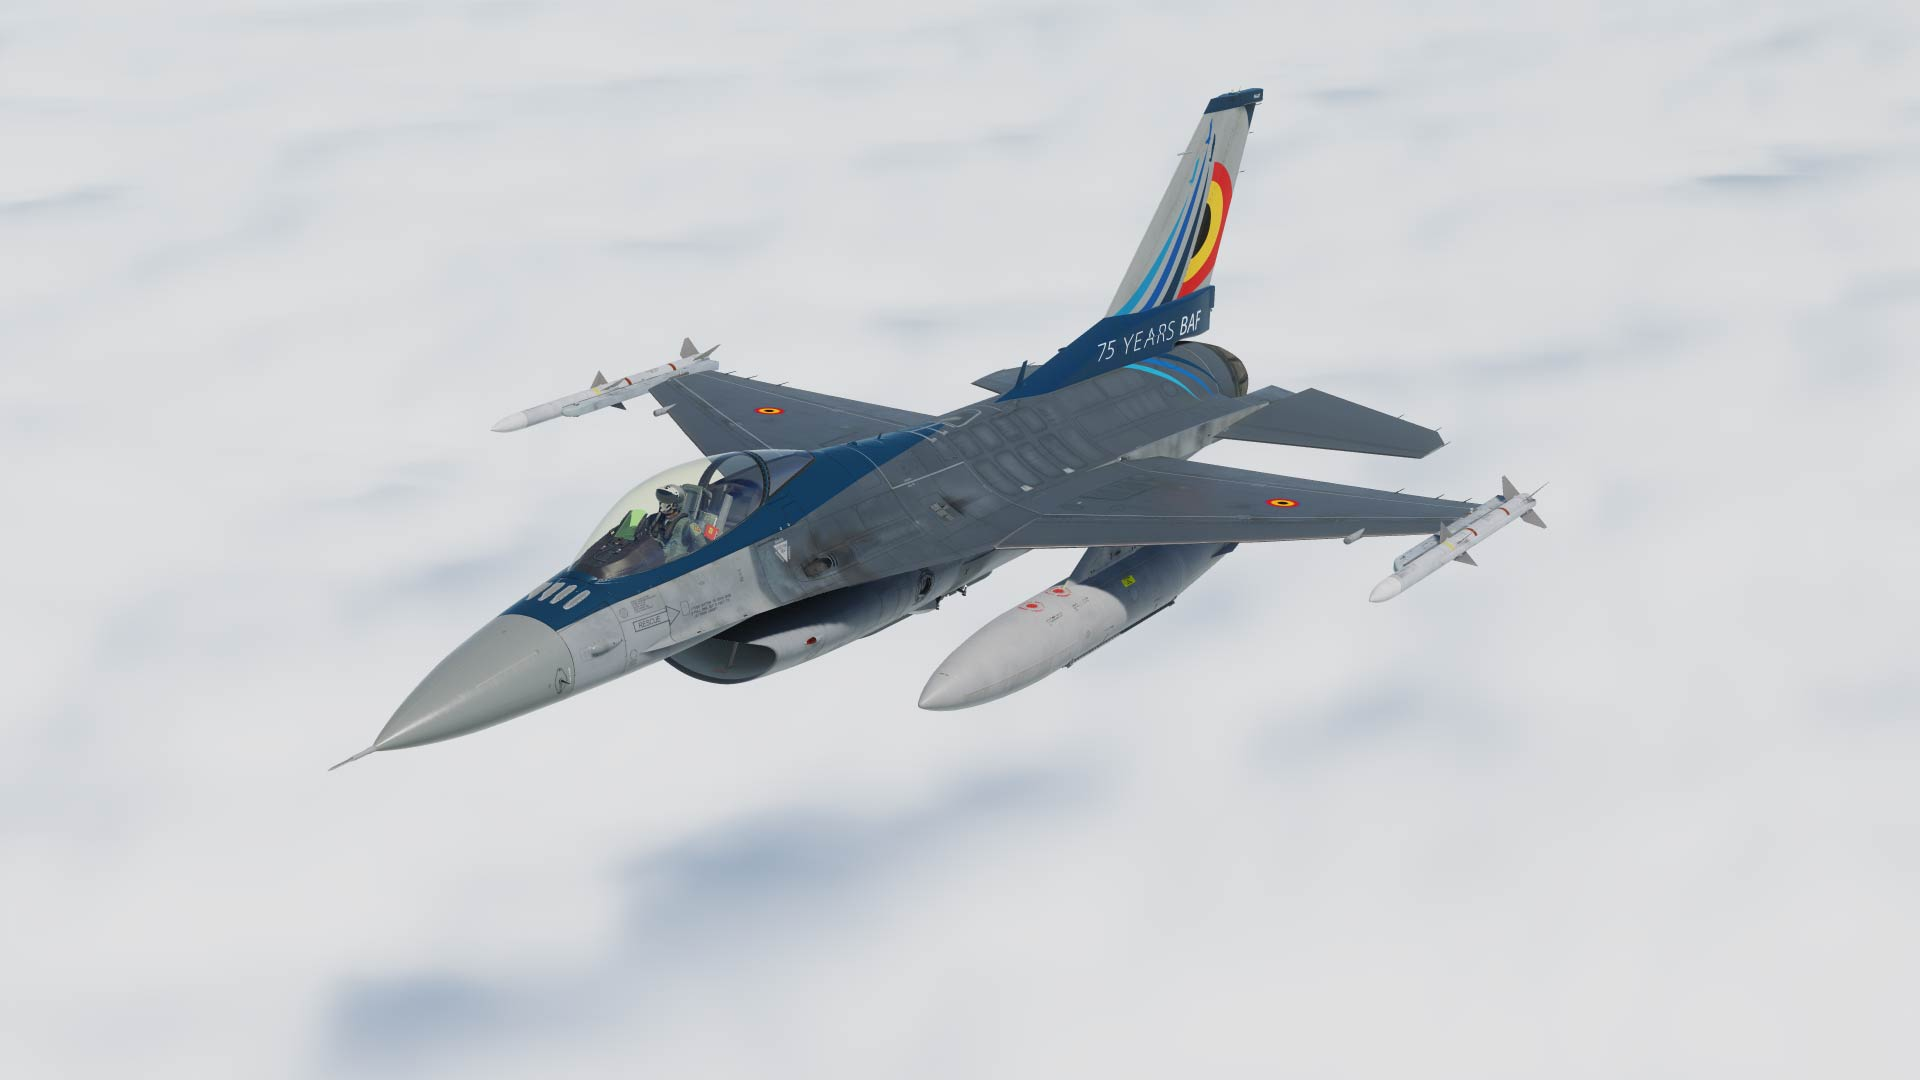 F-16 Belgian Air Force  FA-87 75th Years Anniversary